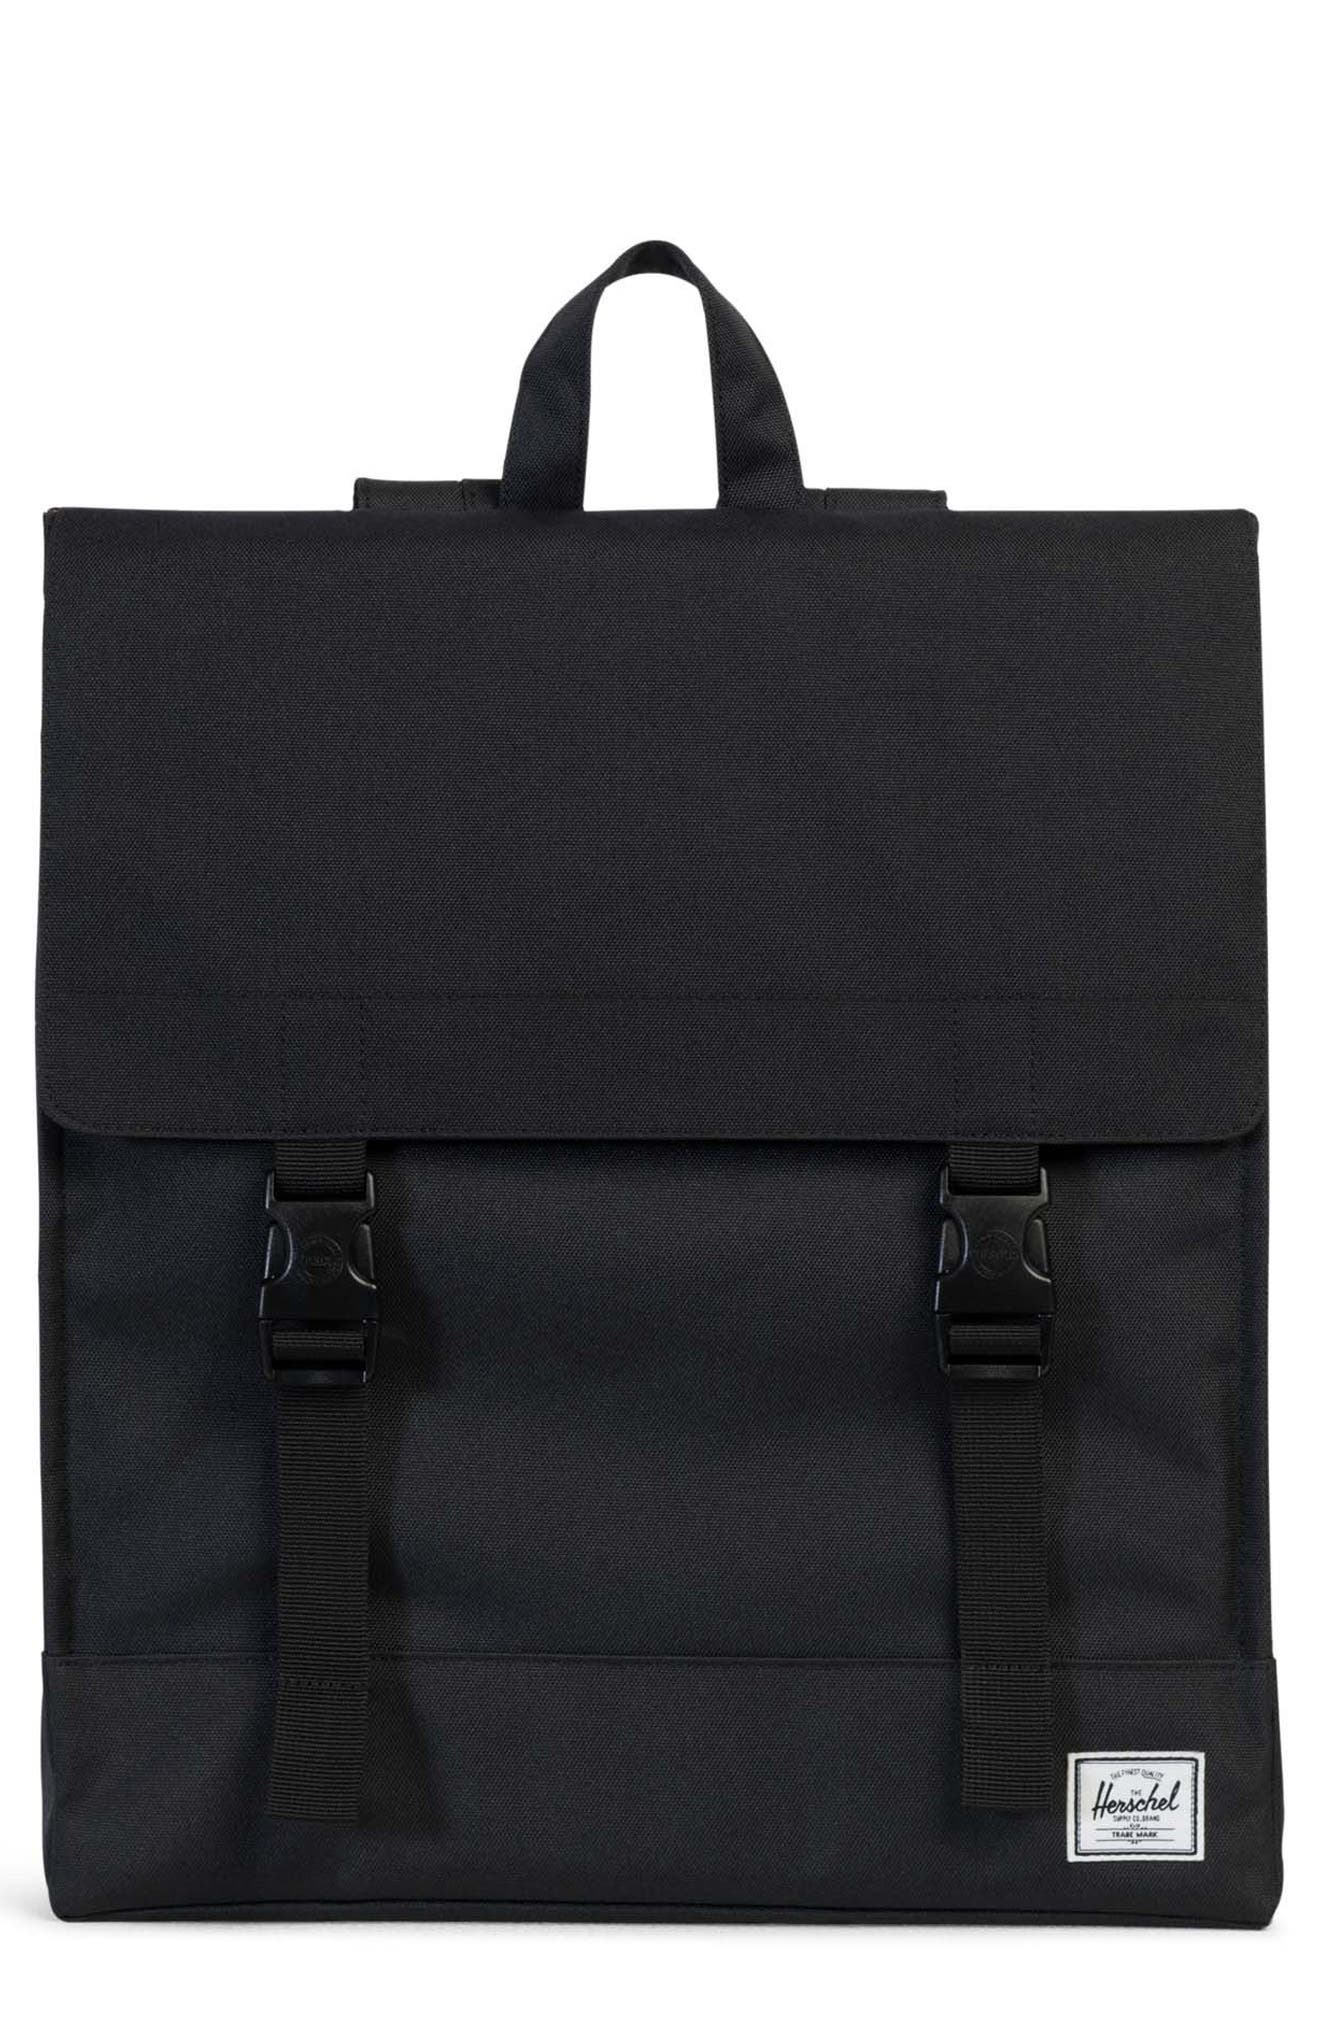 Survey Backpack,                             Main thumbnail 1, color,                             Black